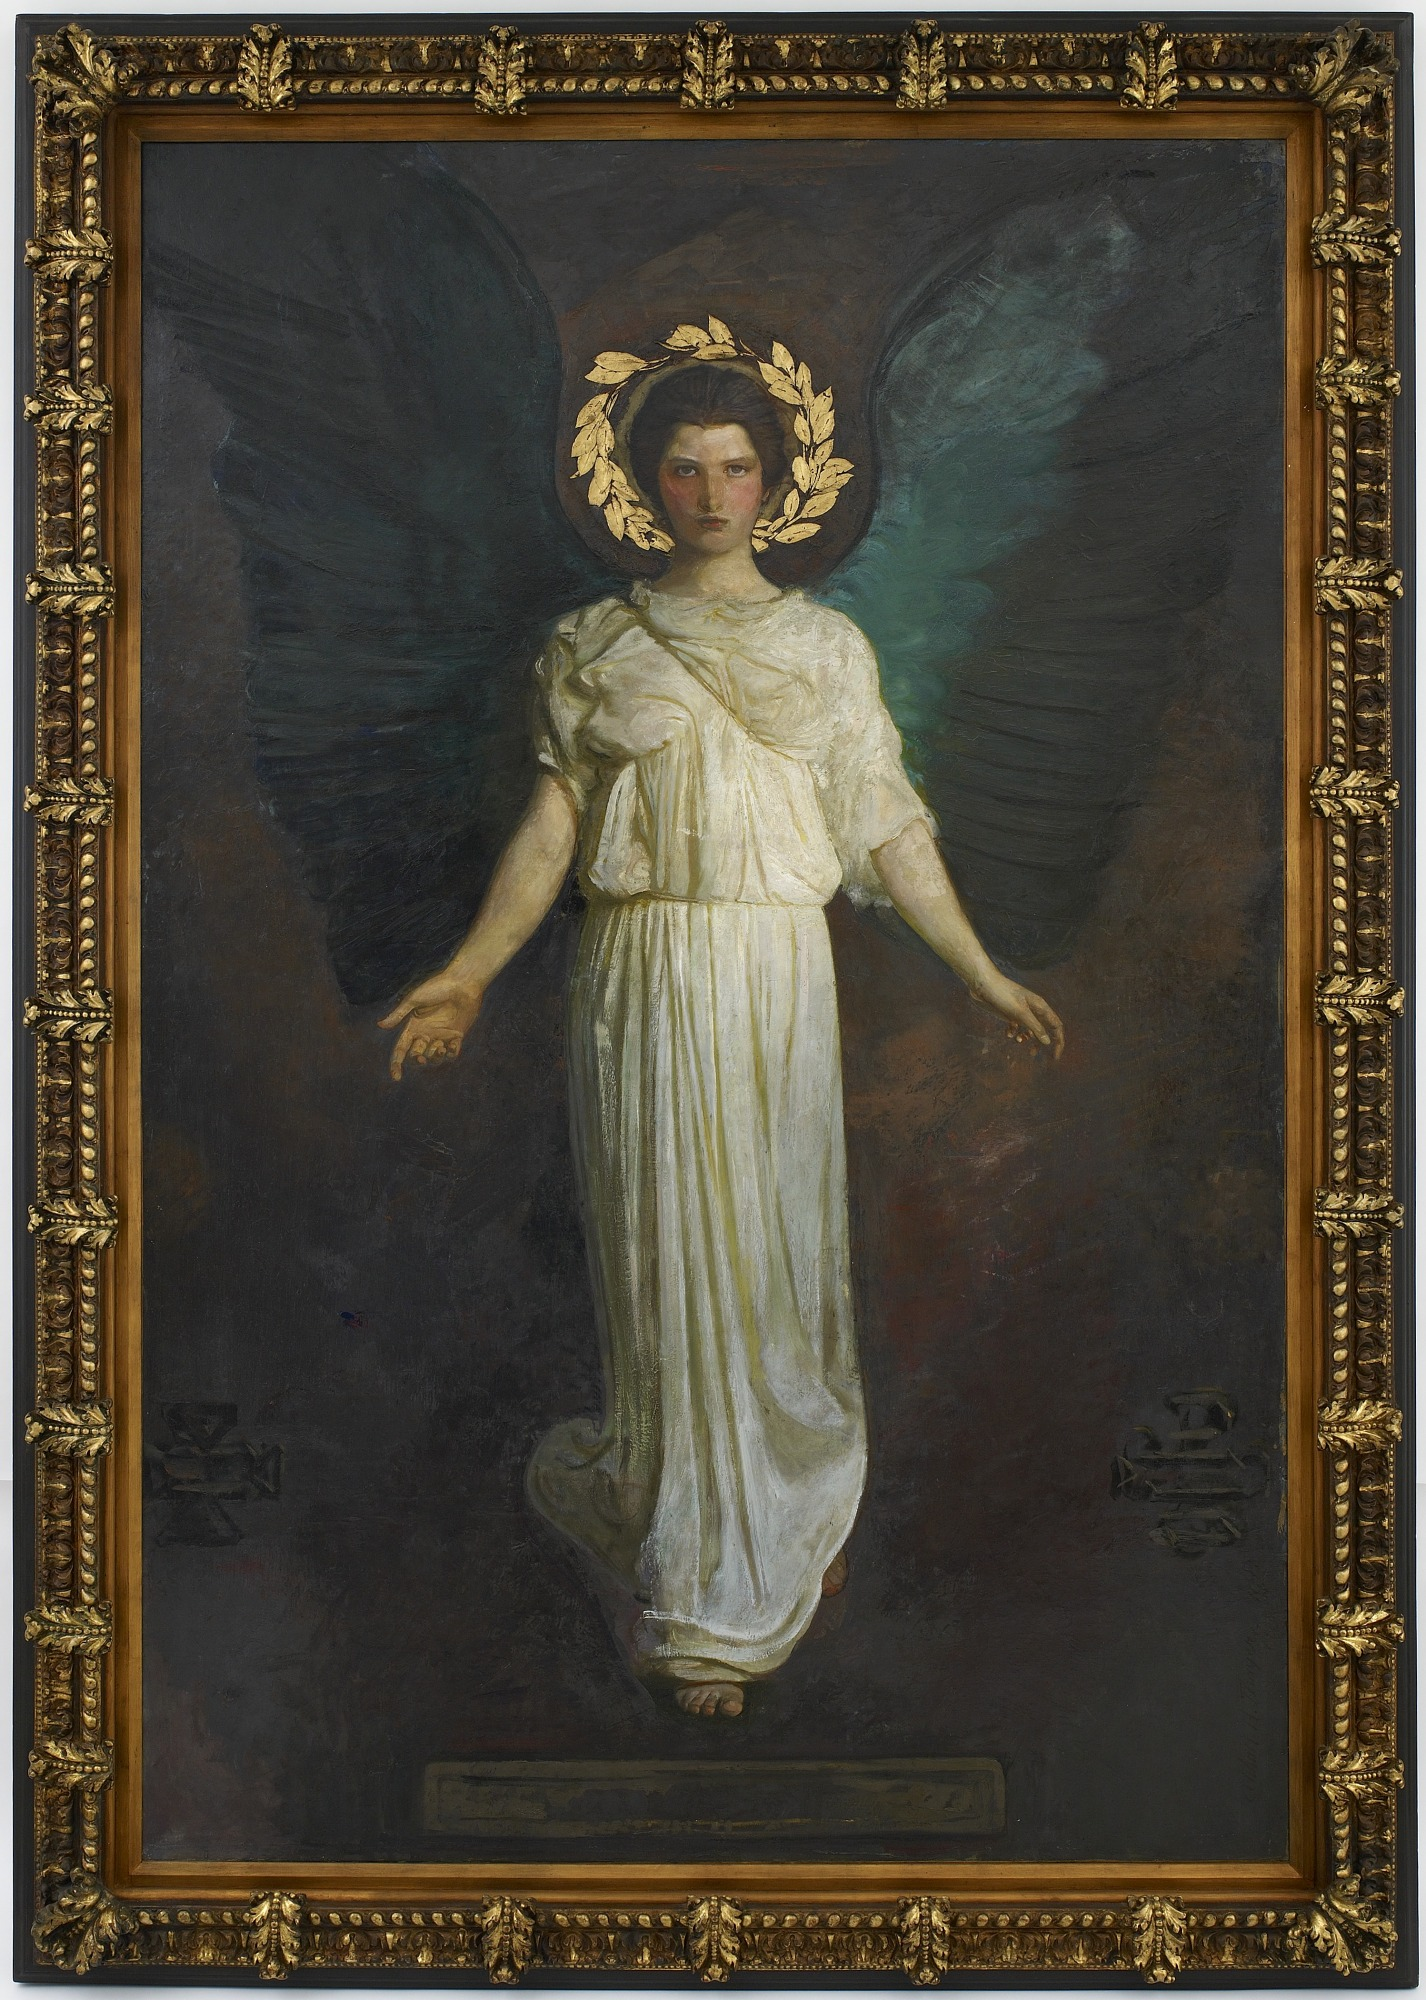 with frame: A Winged Figure